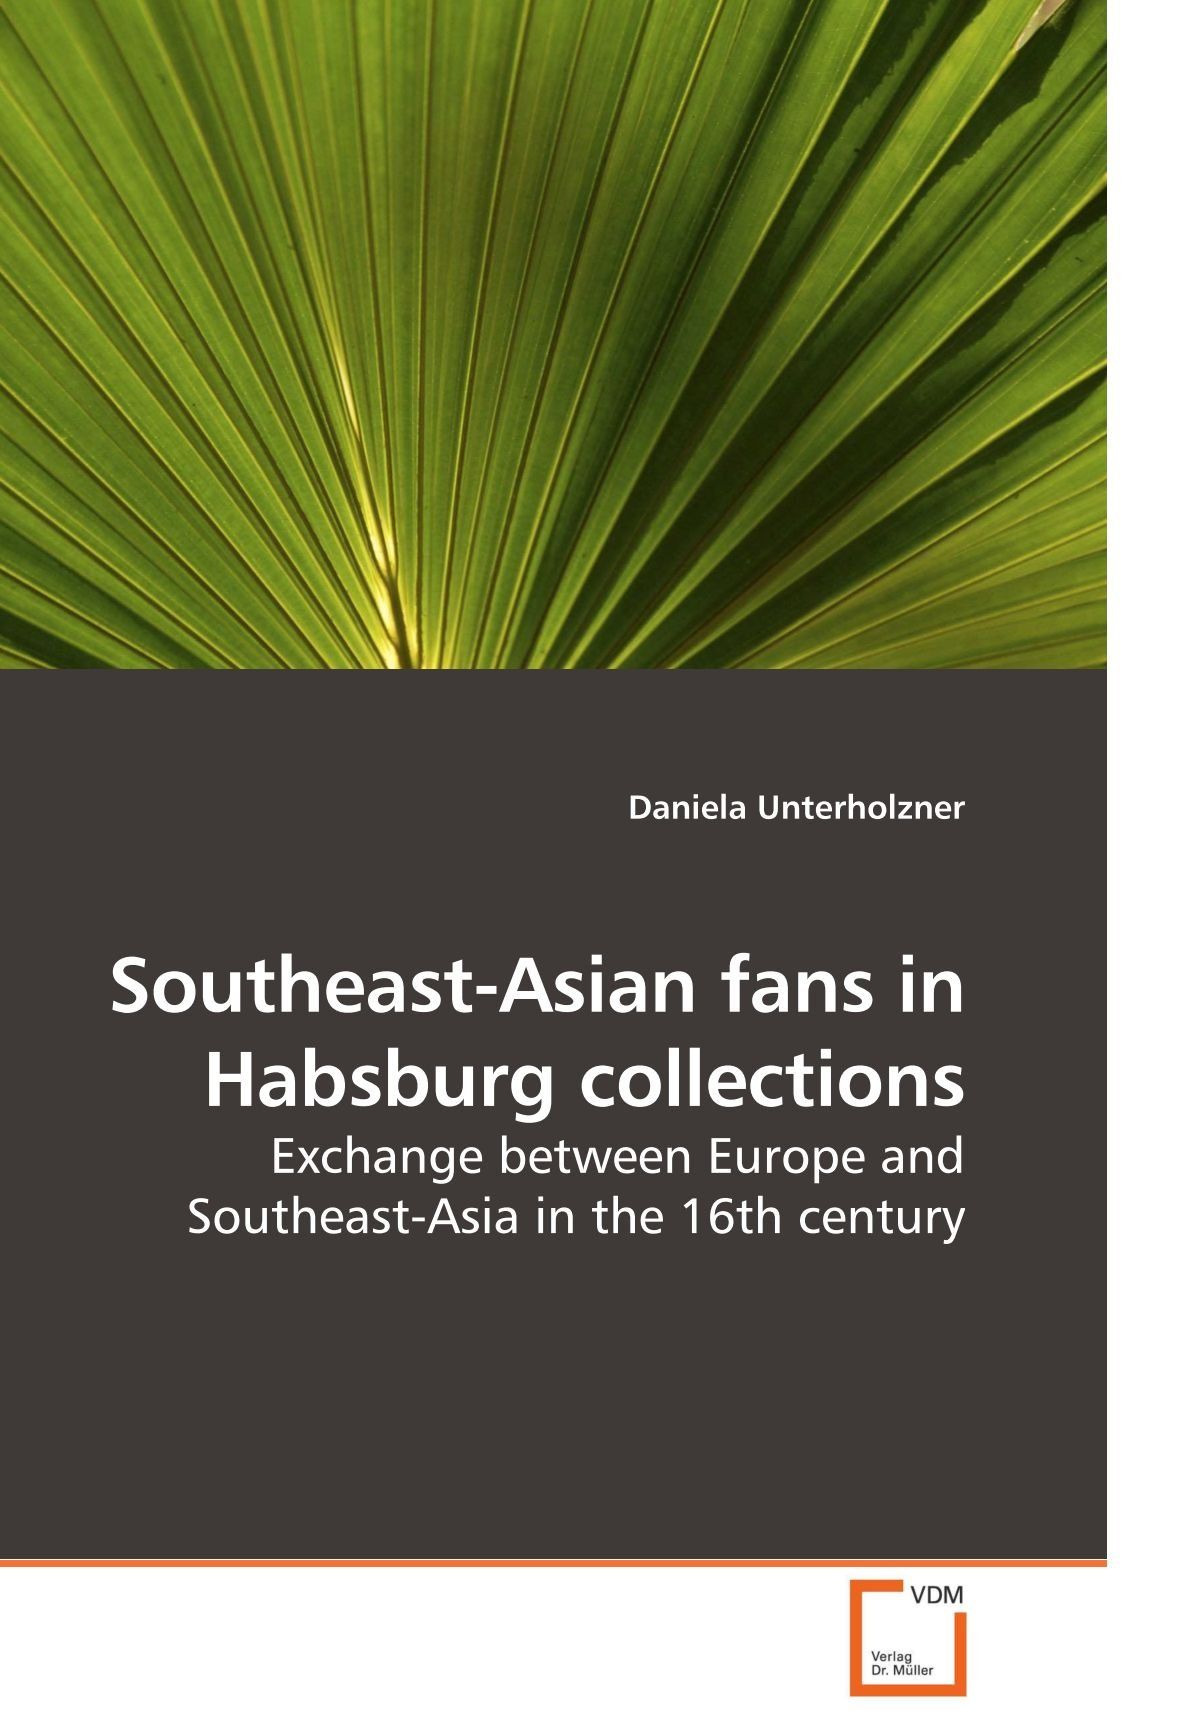 Download Southeast-Asian fans in Habsburg collections: Exchange between Europe and Southeast-Asia in the 16th century PDF